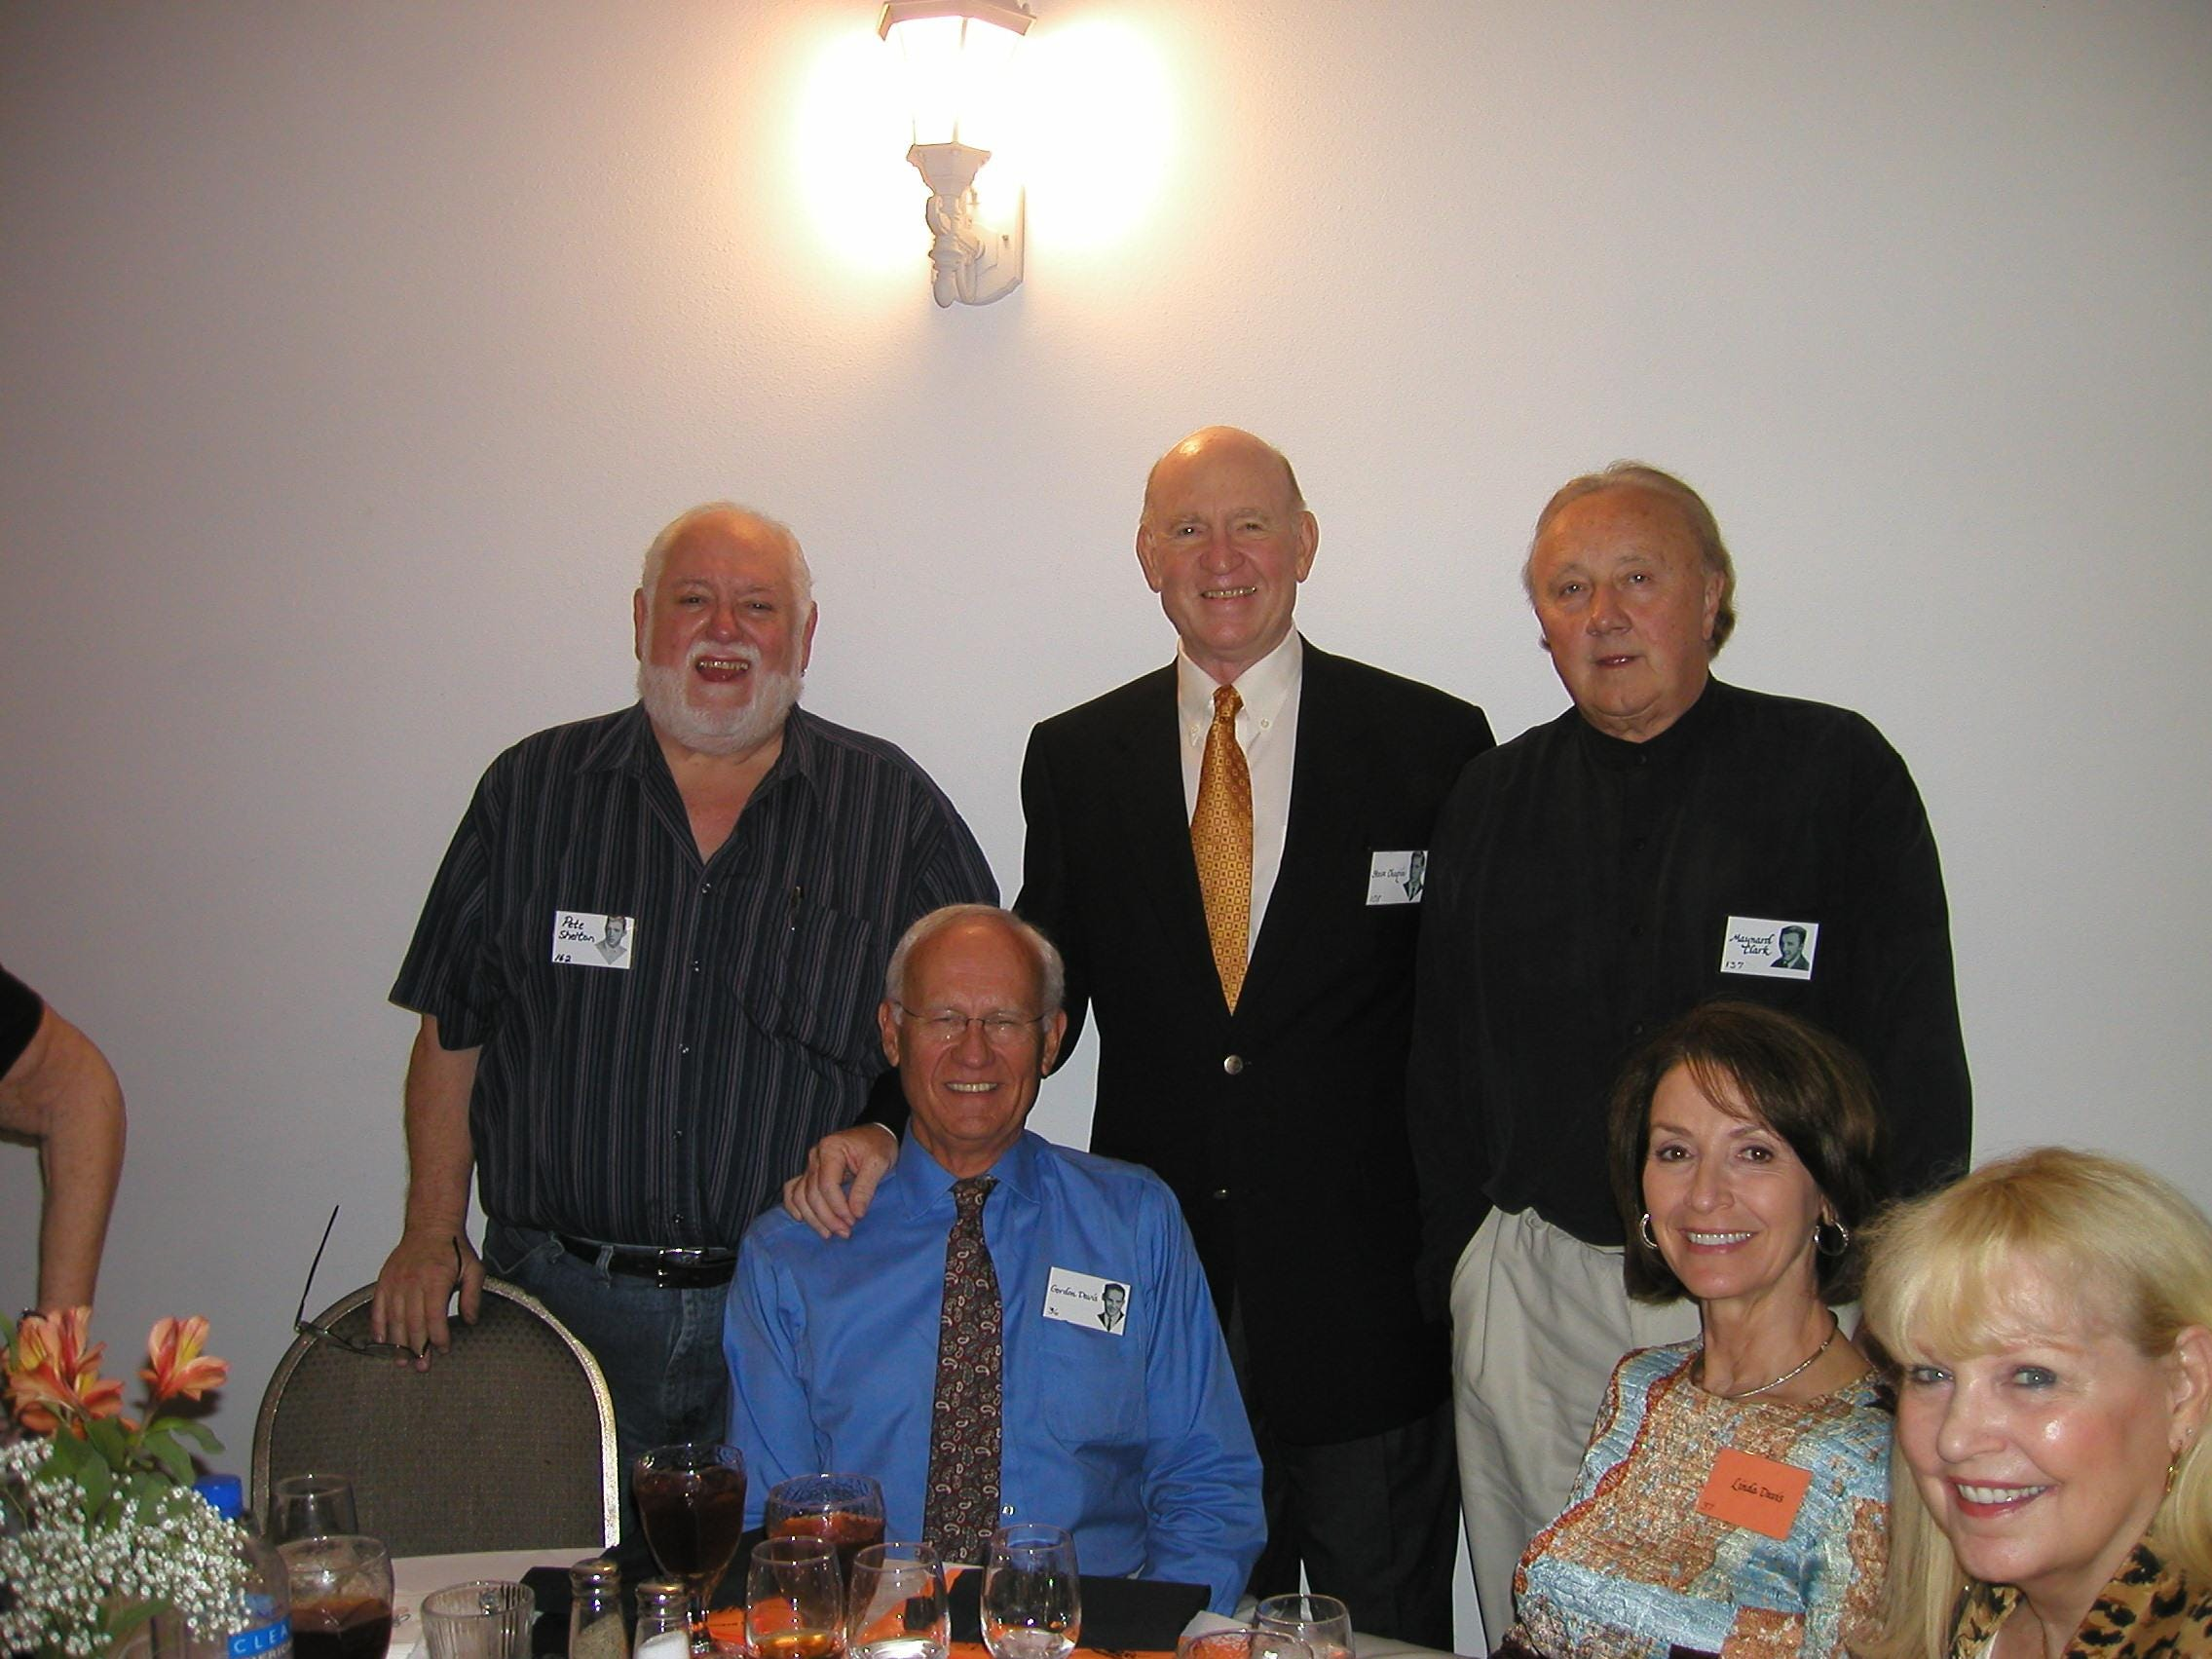 Enjoying  dinner and sharing memories at the 50th reunion of the Young High School Class of 1959 are, from left, Pete Shelton, Gordon Davis (seated), Steve Chapin, Maynard Clark, Linda Davis and Susan Clark. The group met at Rothchild's for a couple of weekend dinners and also picnicked at Duff Park, the site of the school's former football field.